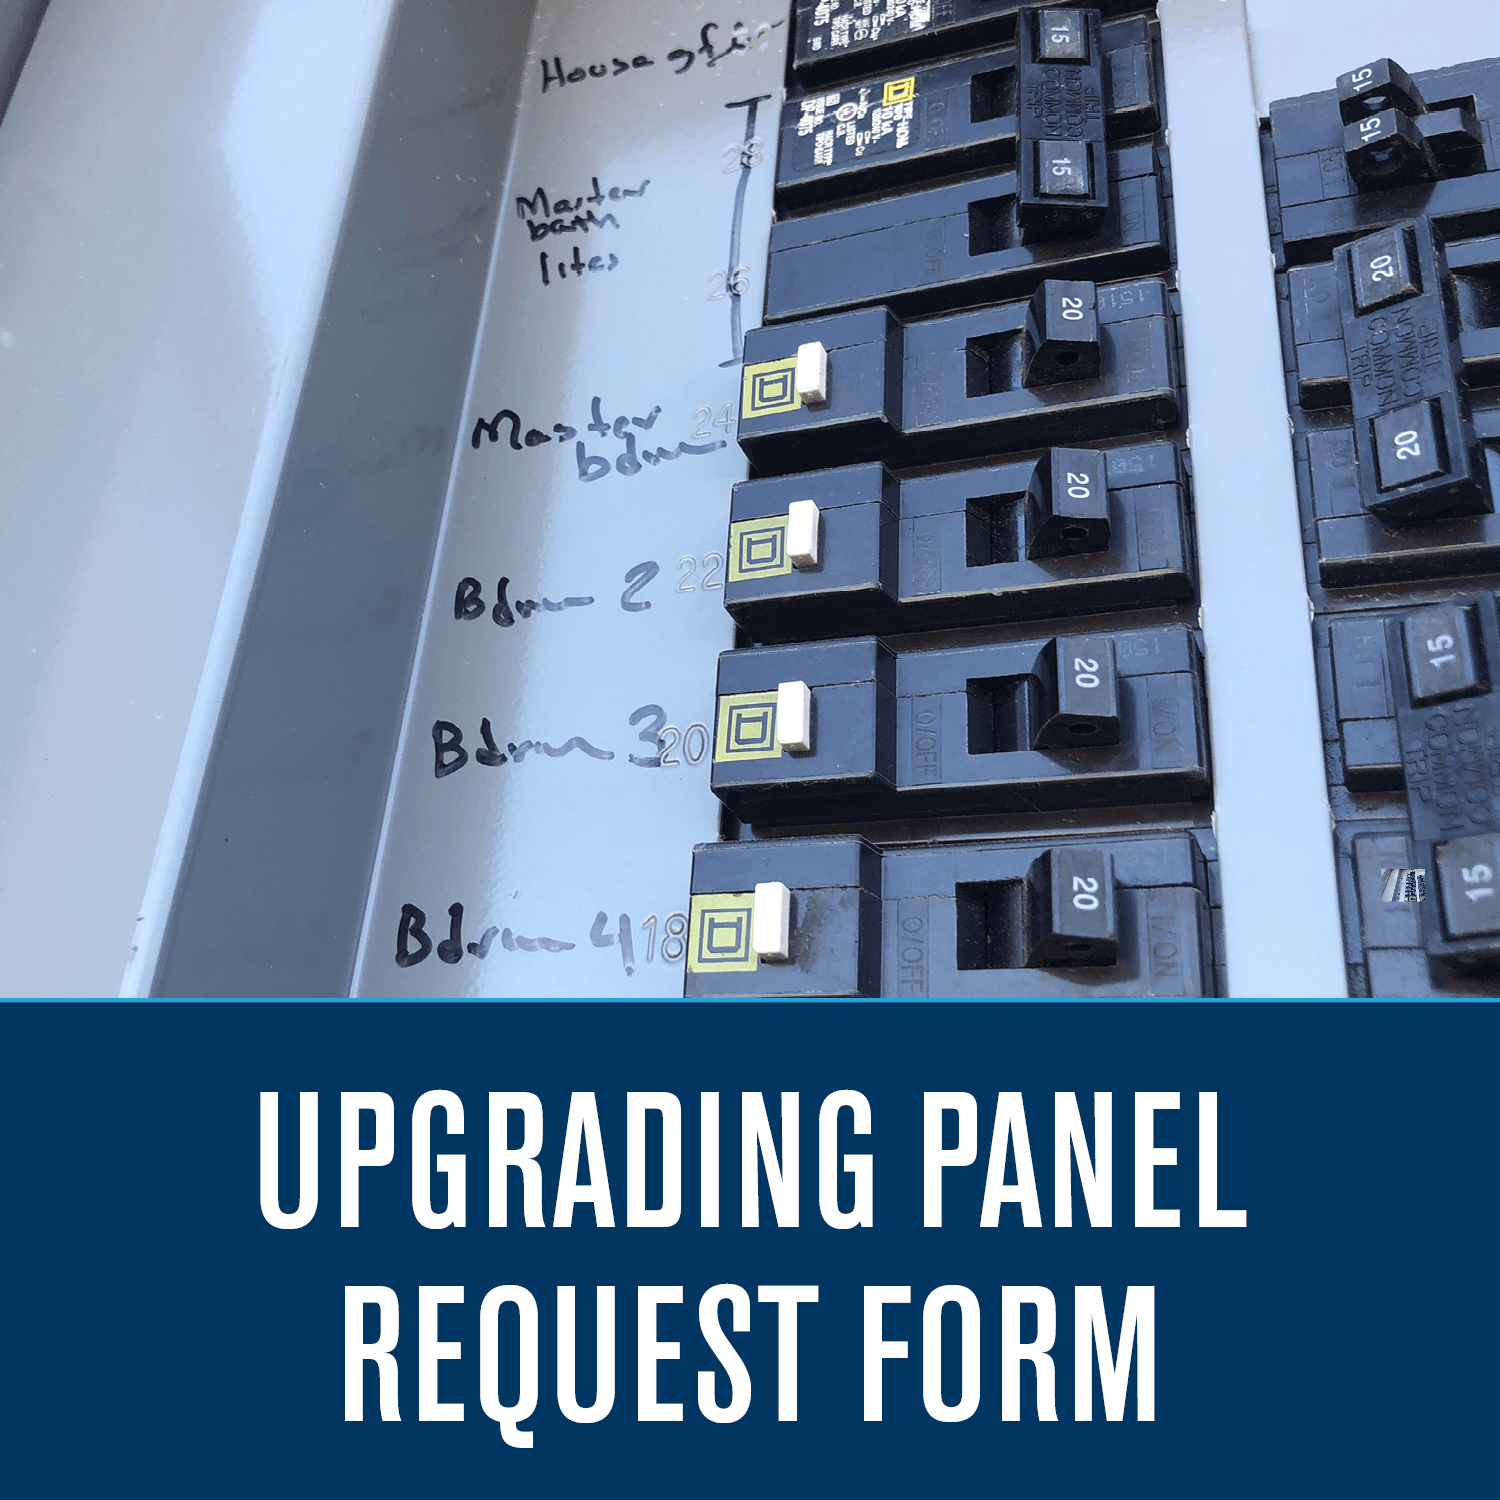 Upgrading Panel Request Form